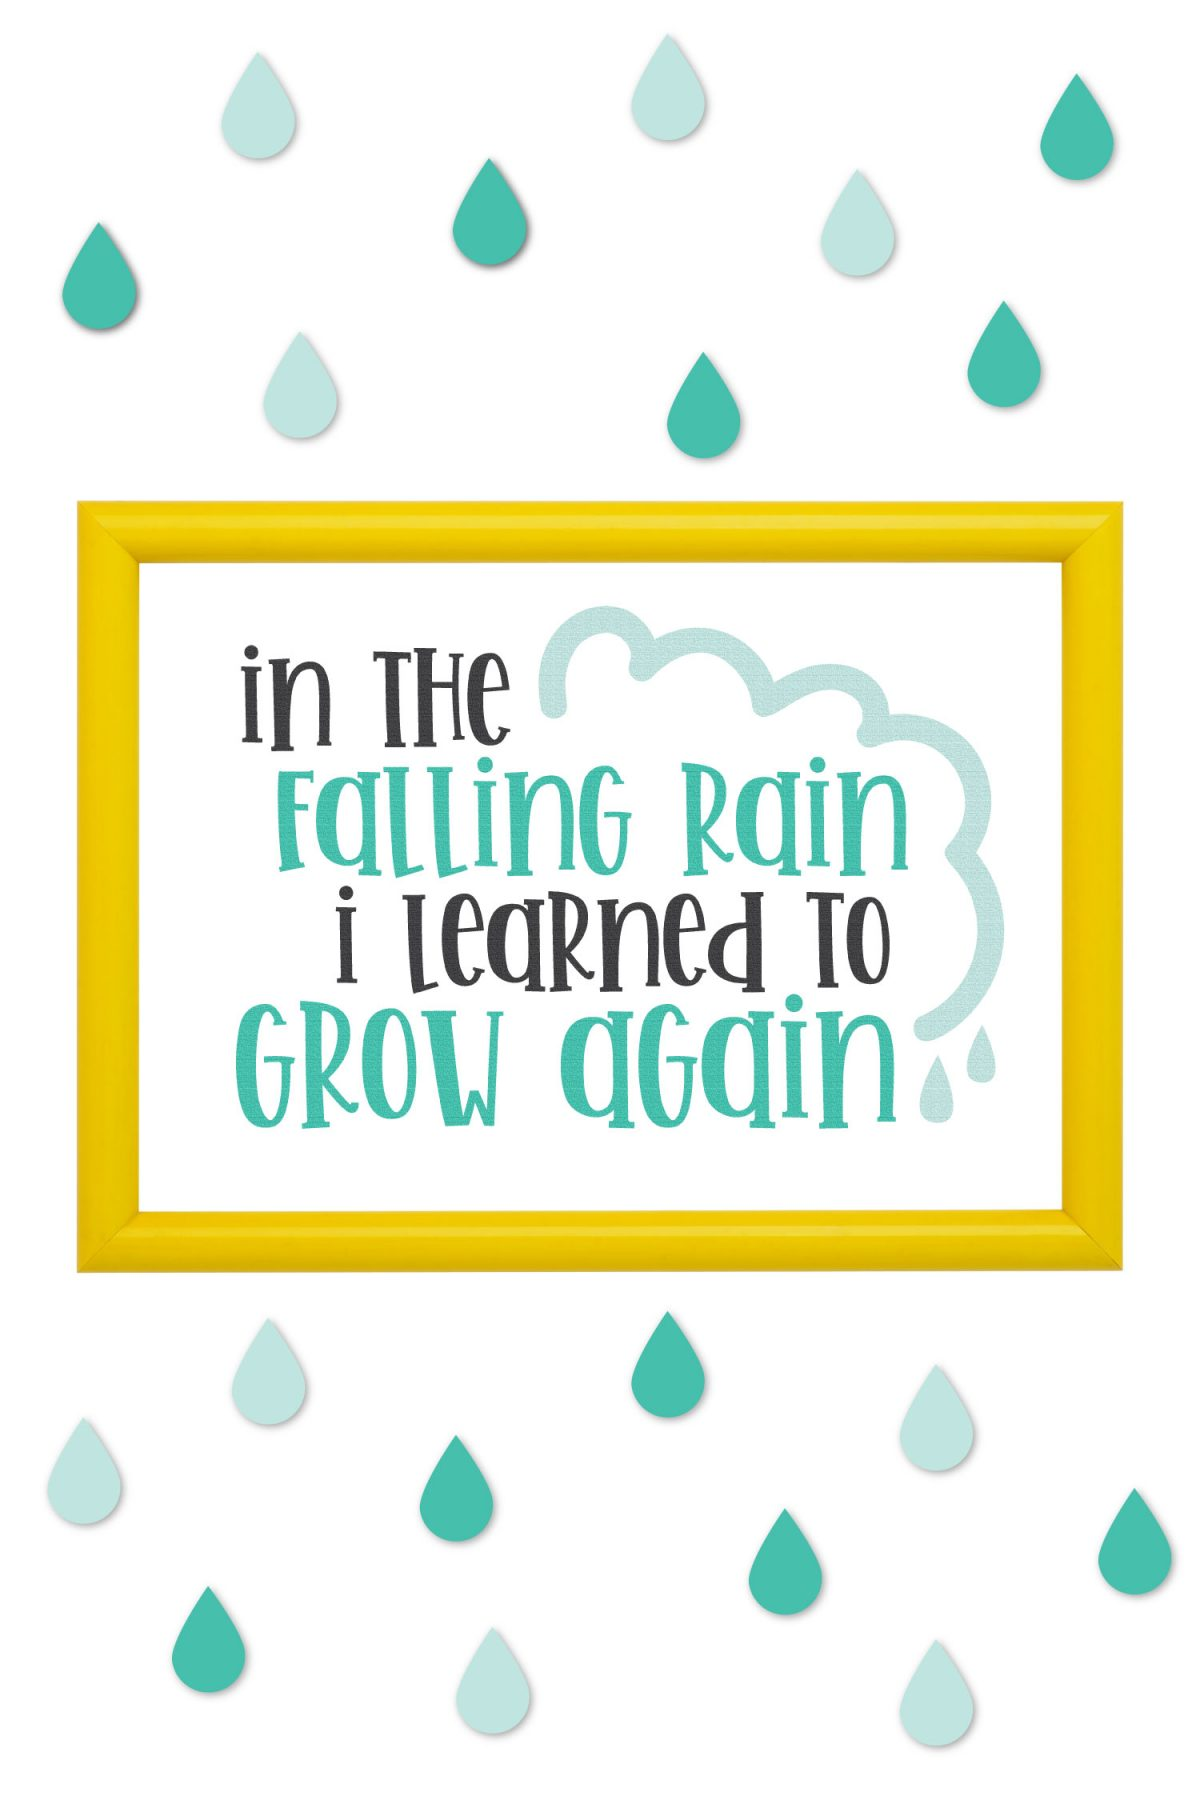 Spring is just around the corner, which means rain, which means new flowers and growth all around! If you're a fan of rainy days—or simply need a reminder to embrace them—then use these Rain SVGs to create whimsical home decor items to brighten even the rainiest of days!